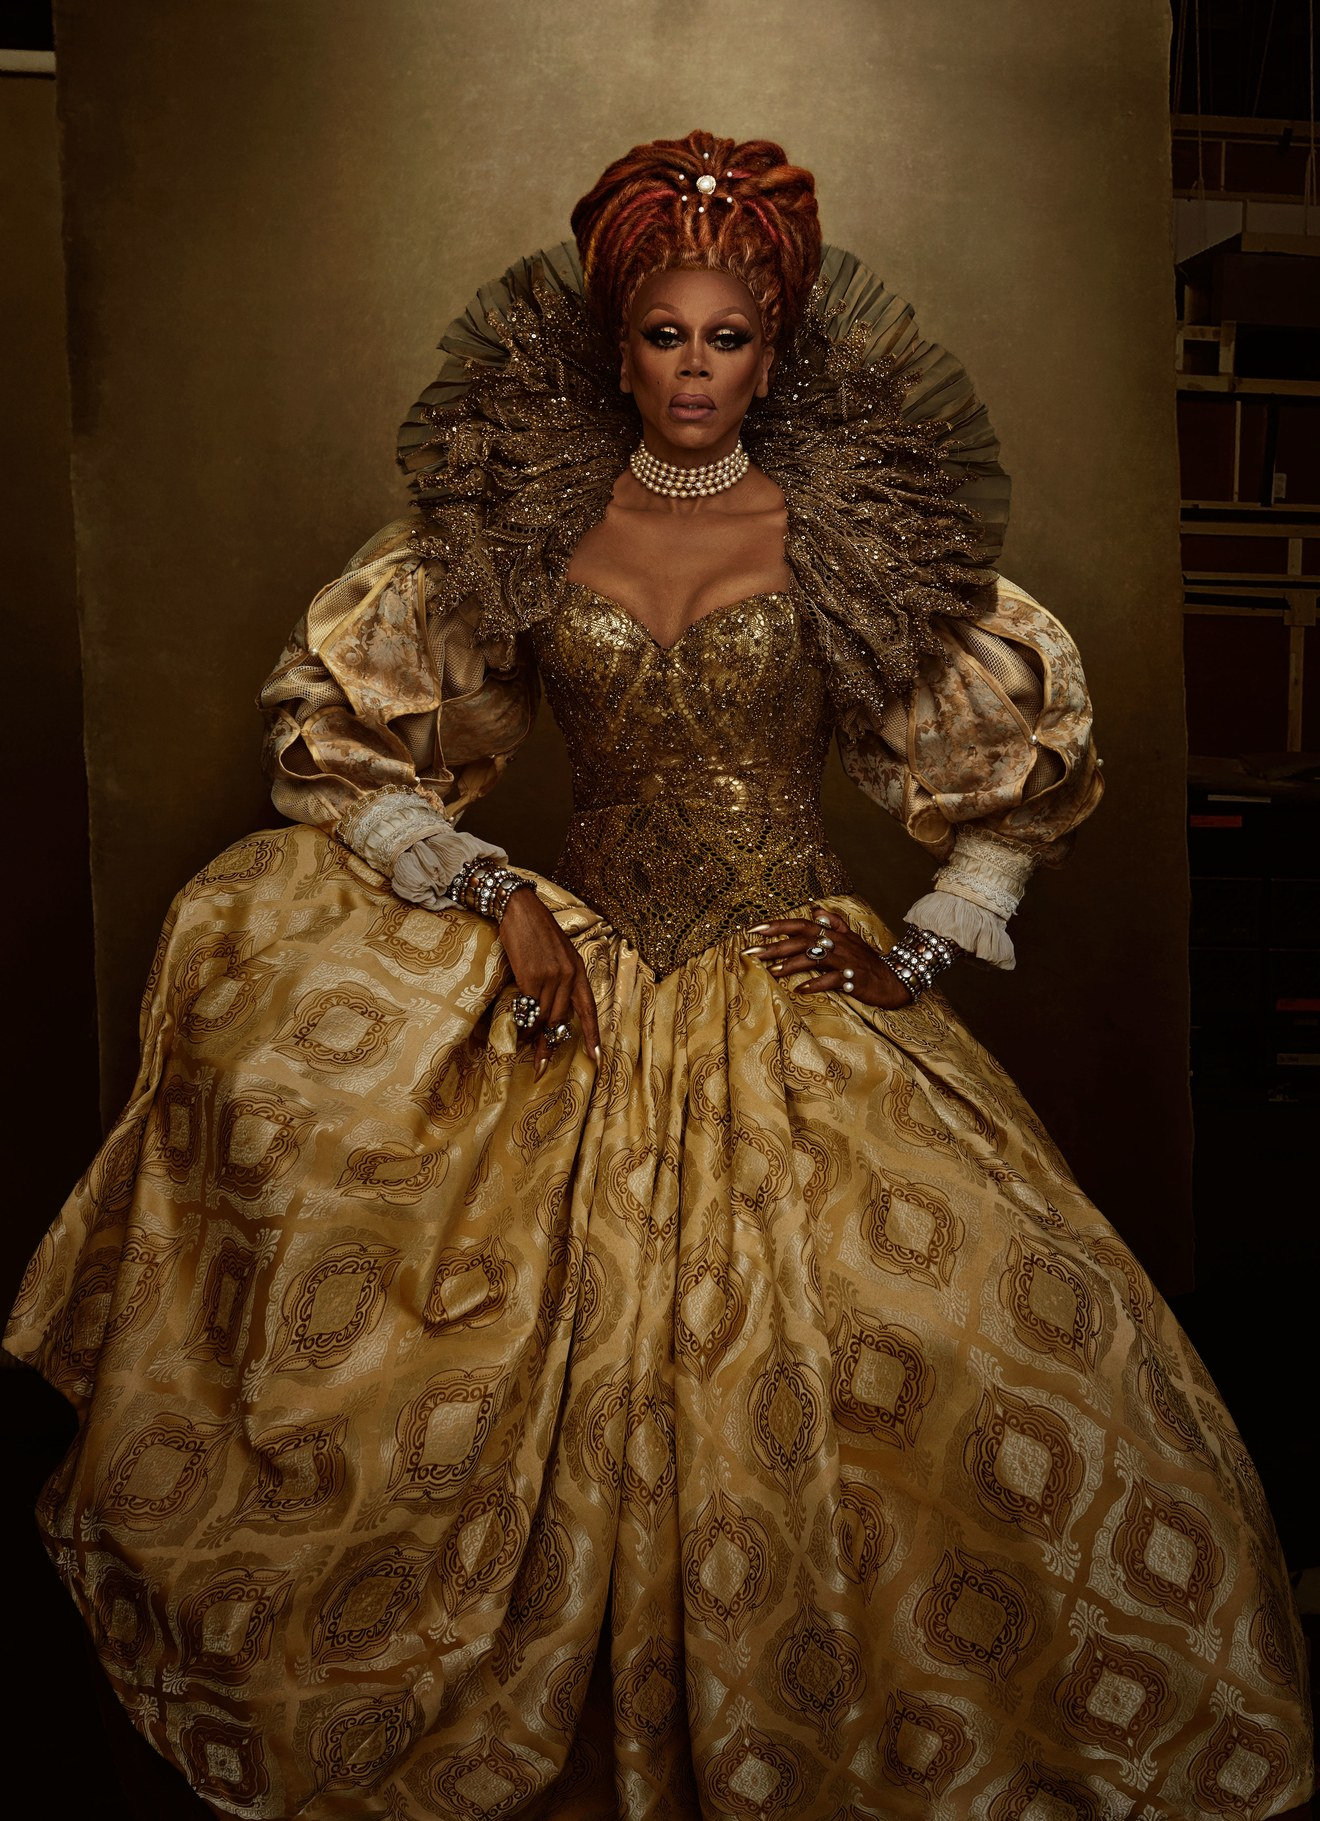 rupaul-vogue-may-2019-issue-02